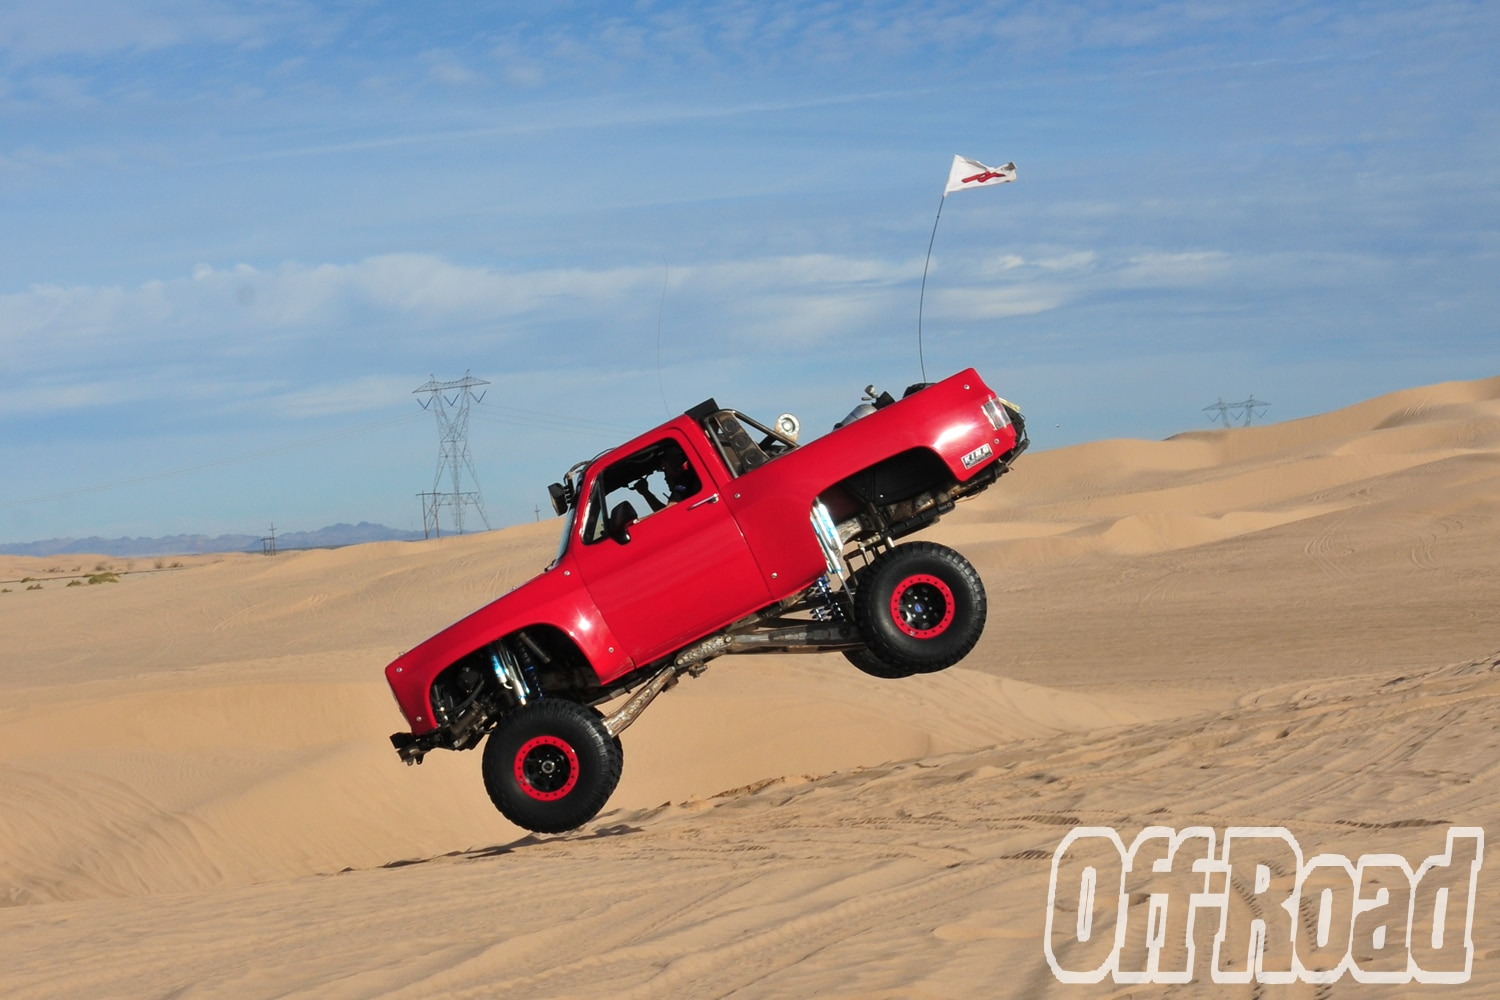 1991 GMC K5 Jimmy Glamis Off Road Magazine Cover Shoot 7